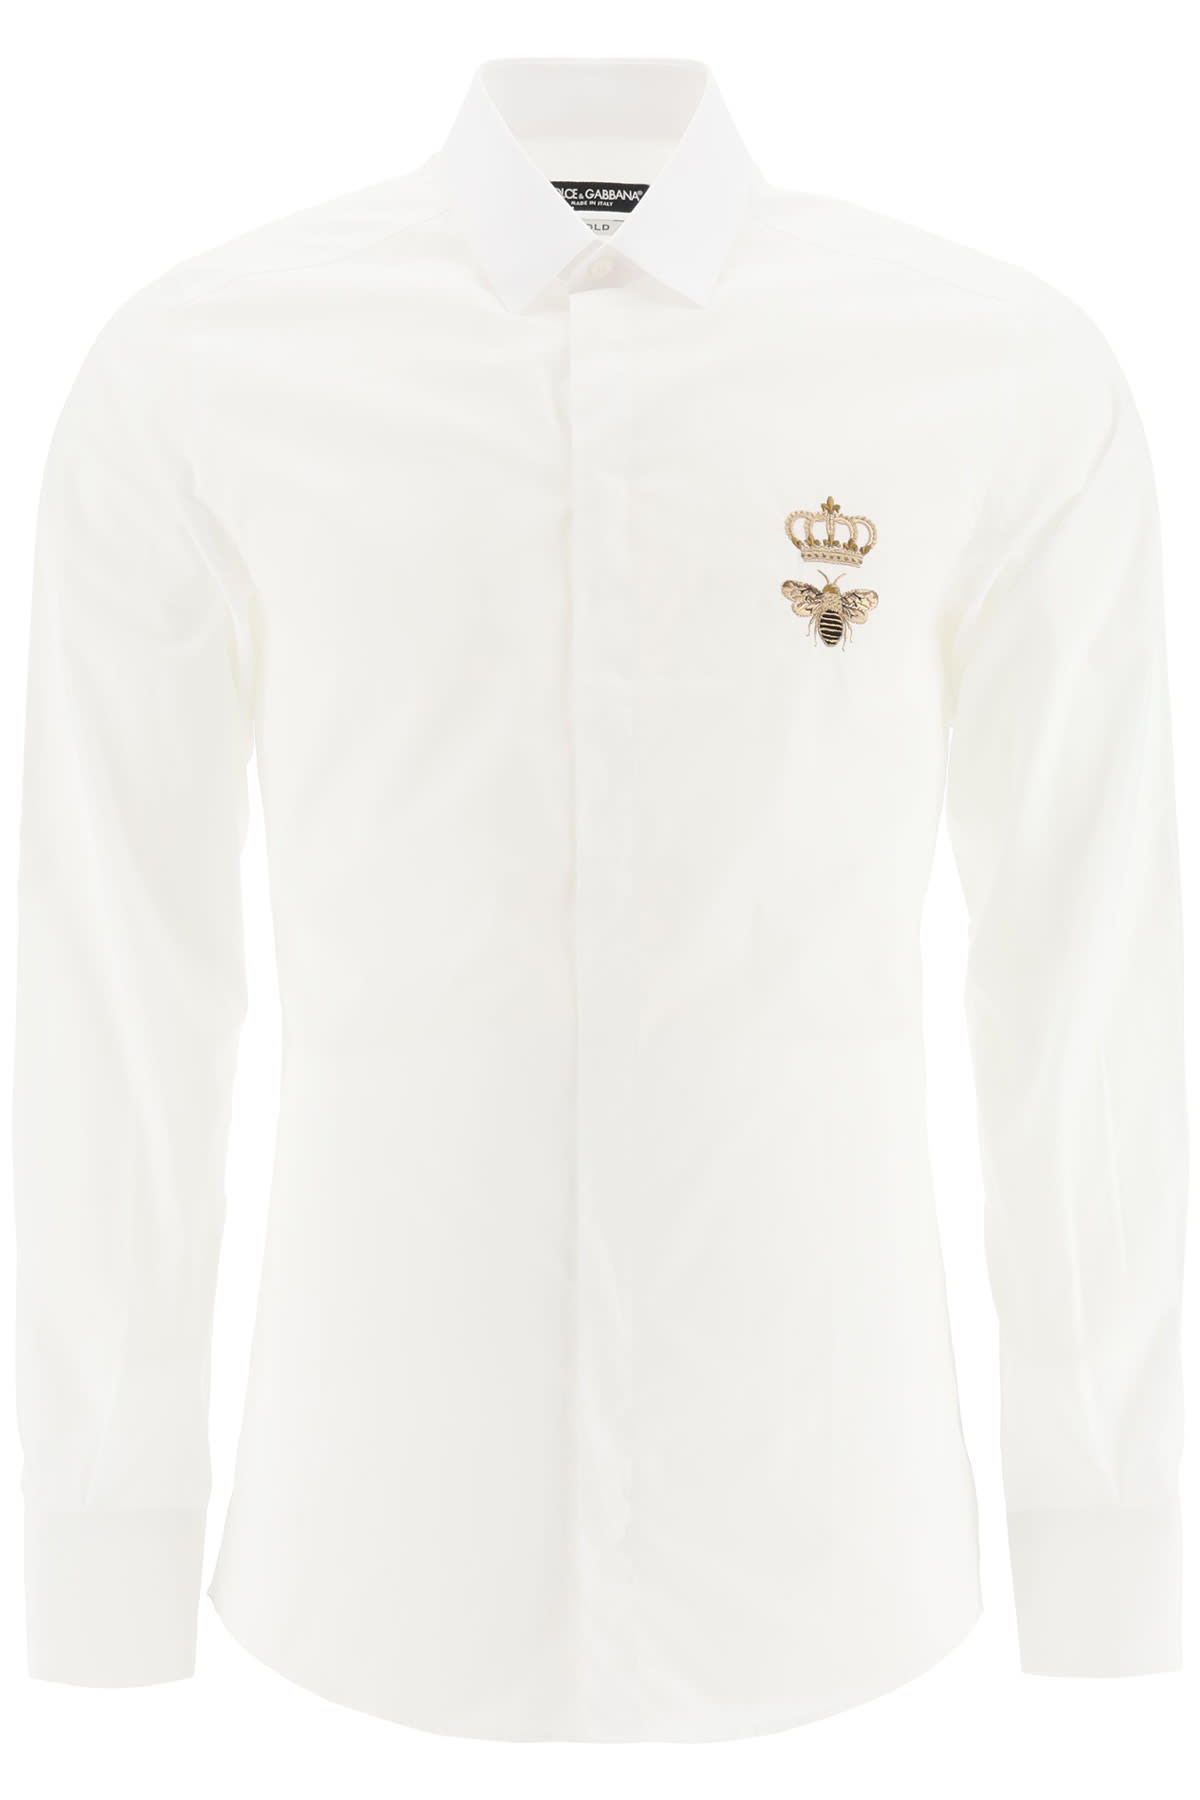 Dolce & Gabbana Shirt With Crown And Bee Embroidery